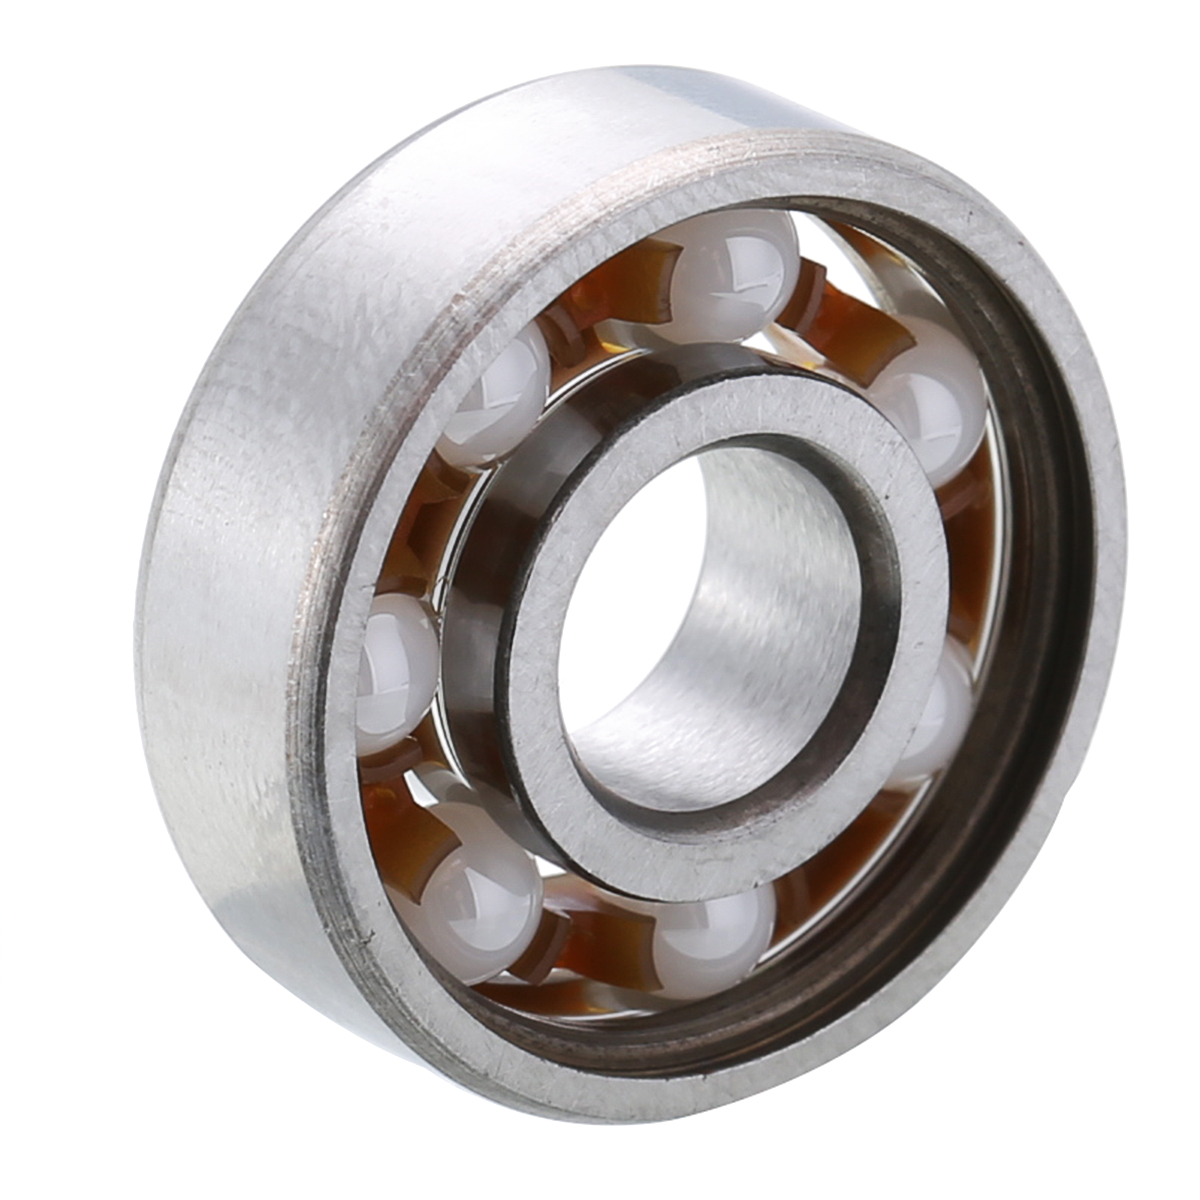 Mixed Ceramic Ball Bearings ZrO2 Zirconia 608 8*22*7mm Hand Fidget Spinner Toy Ceramic Speed Ball Bearings Hardware Tools image